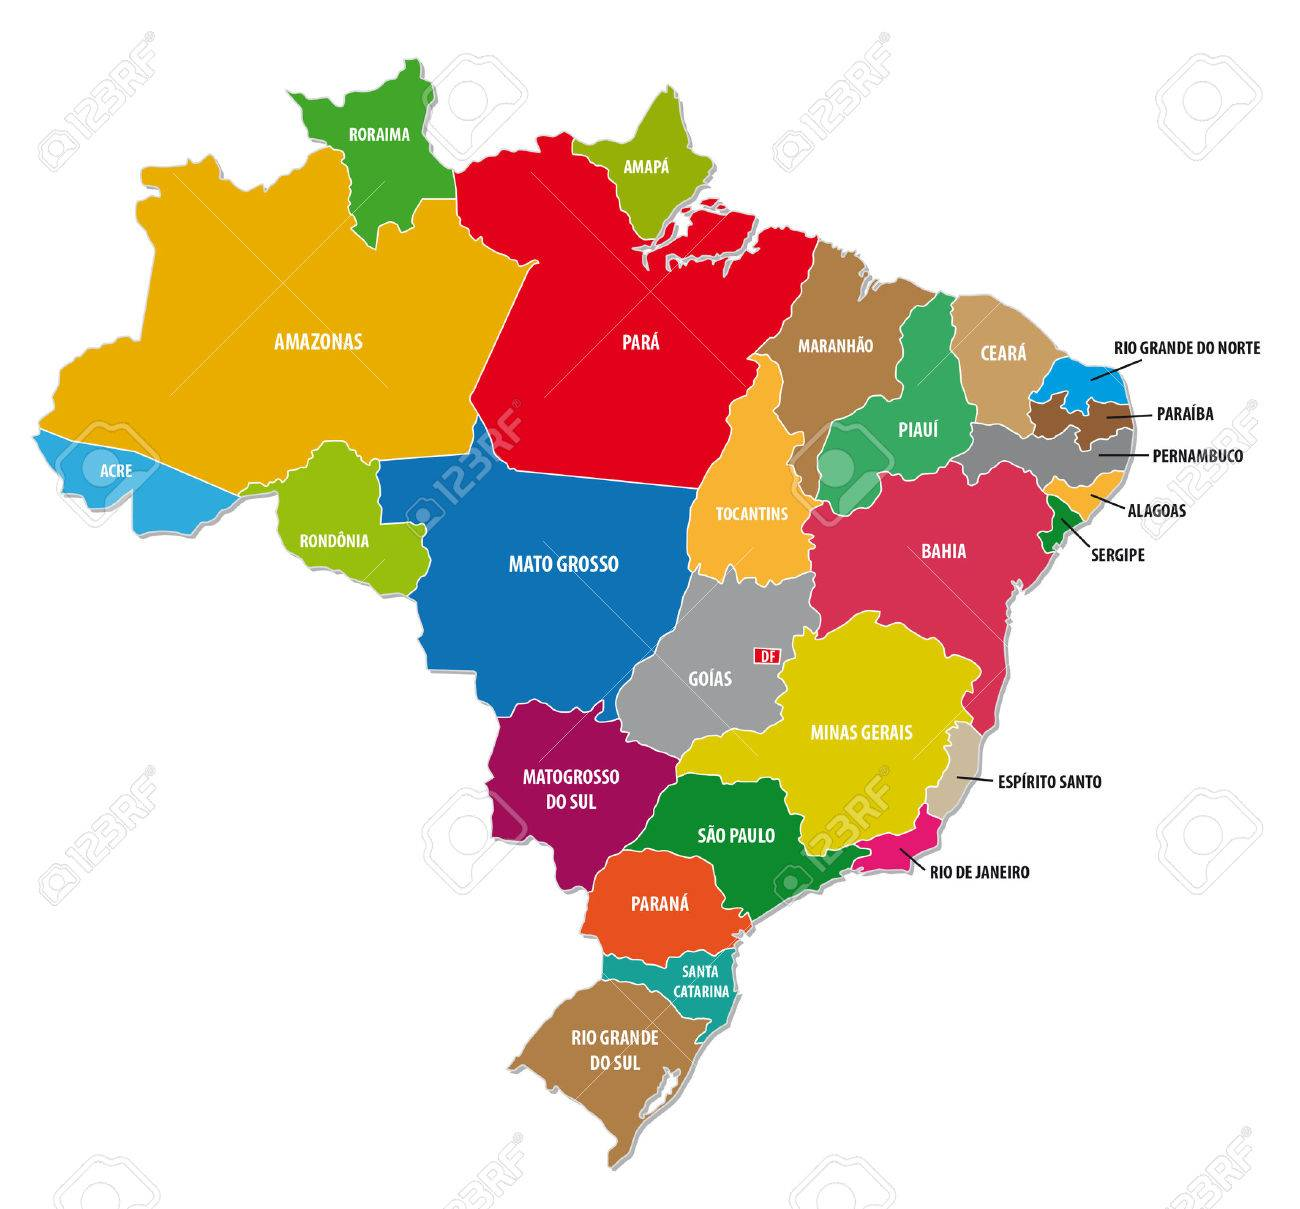 Brazil Colorful Administrative Map Royalty Free Cliparts Vectors